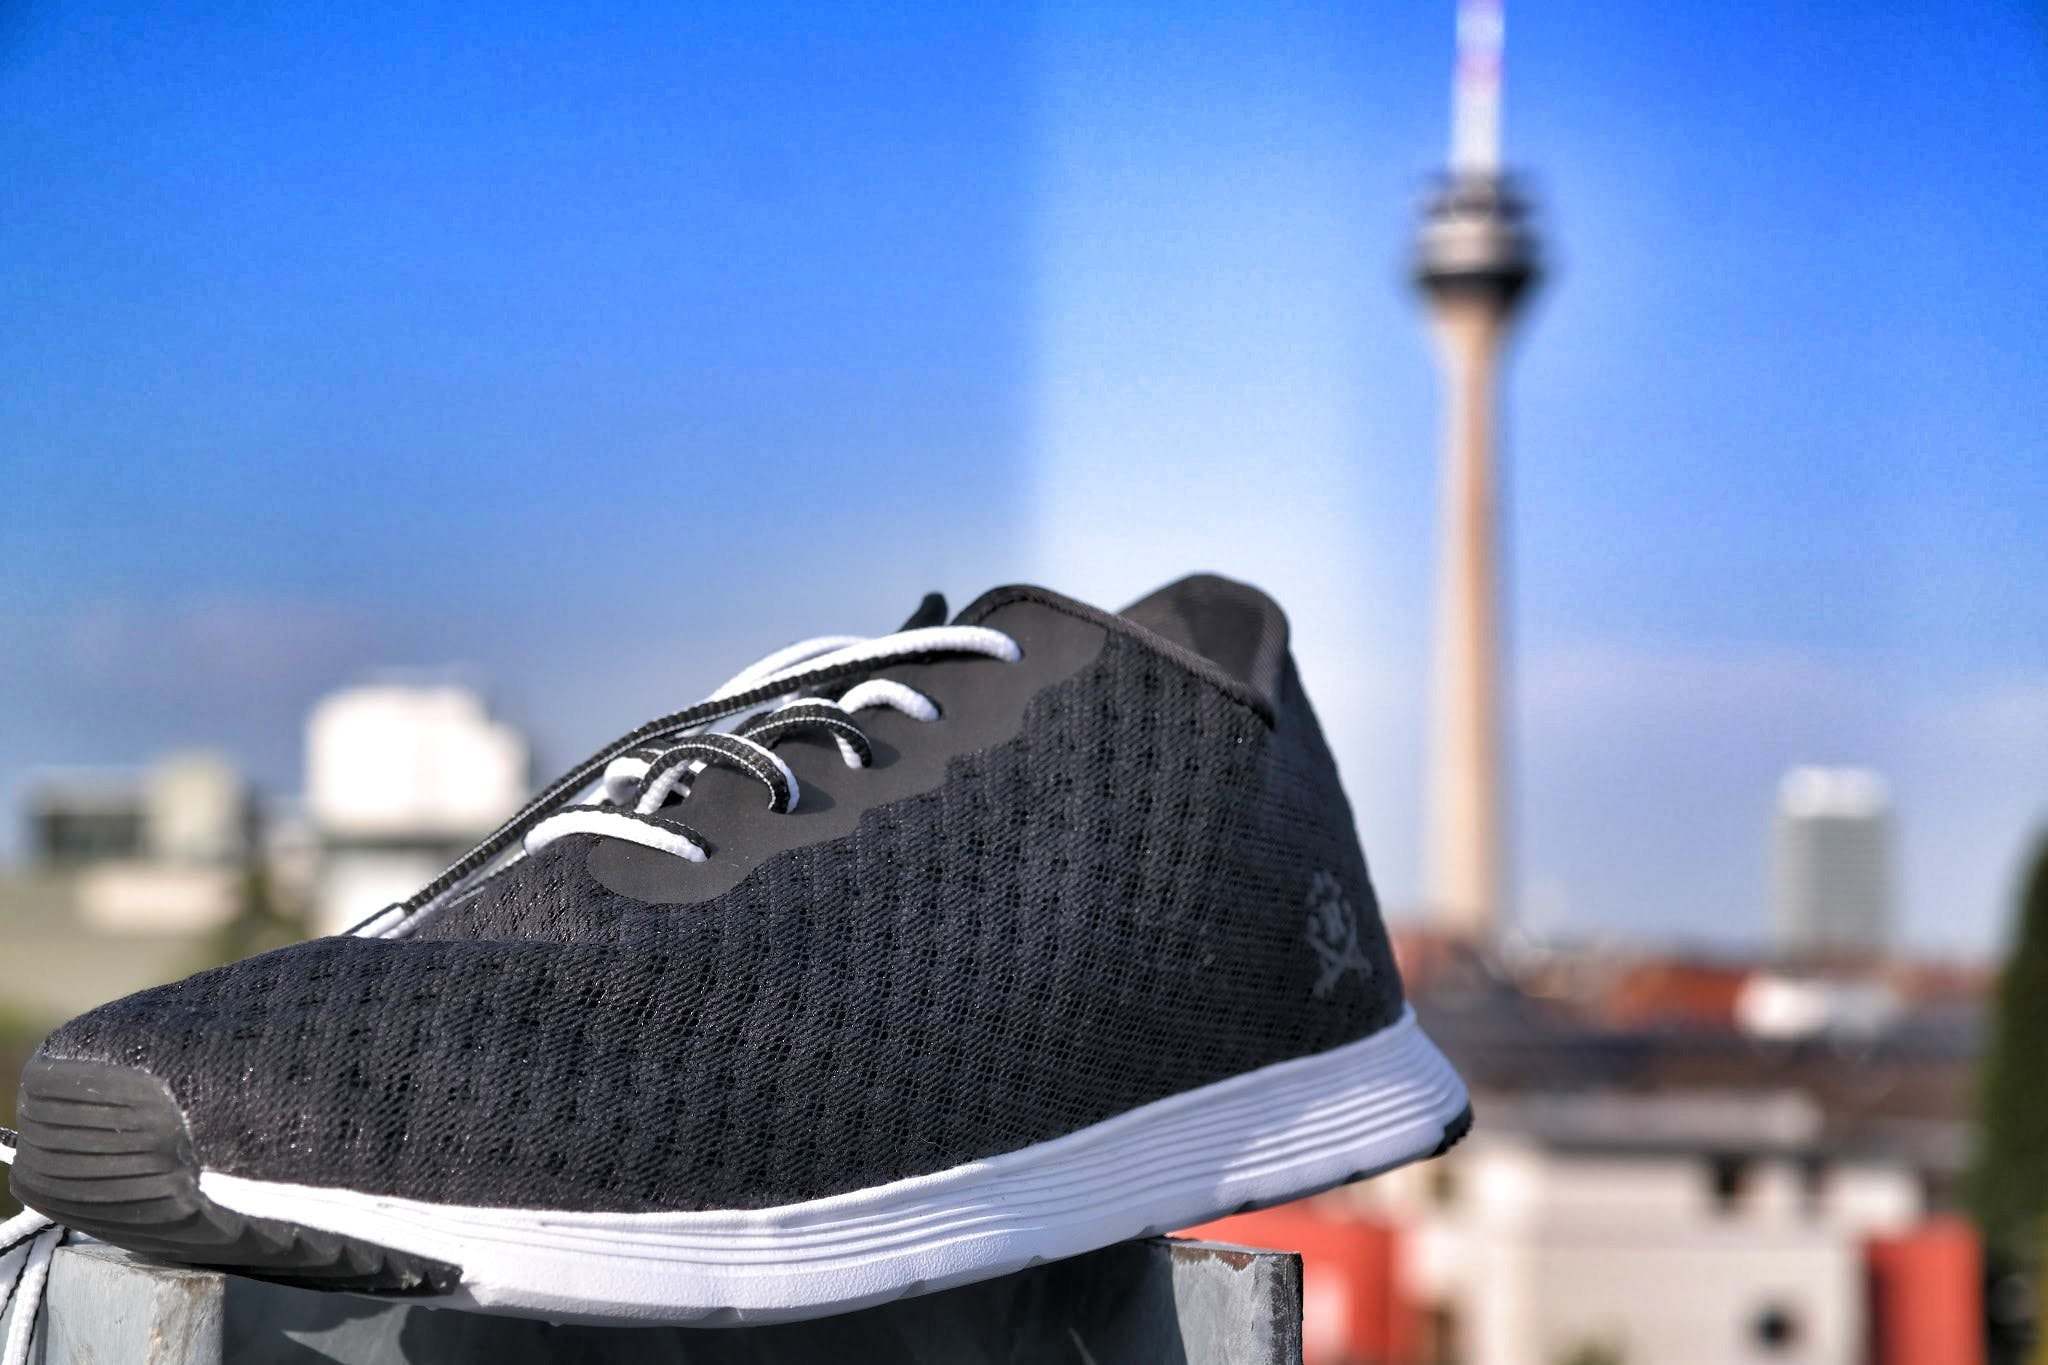 Unpaired of Black and White Lace-up Sneaker in Selective Focus Photography